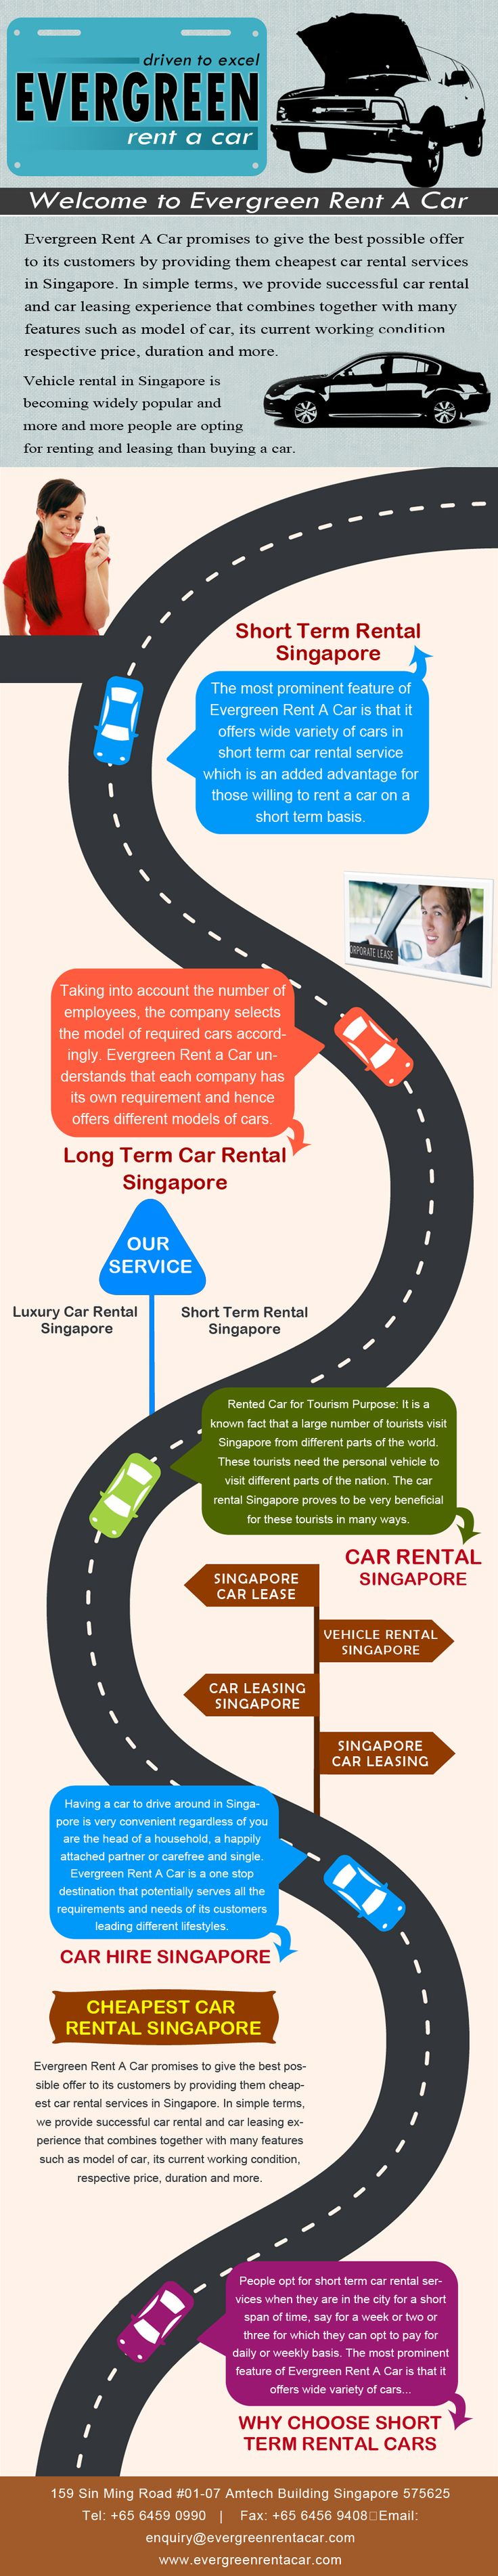 Evergreen Rent A Car provides the the best deal on personal budget car rental and car leasing services in Singapore. Visit us now for car rental at very affordable rates.